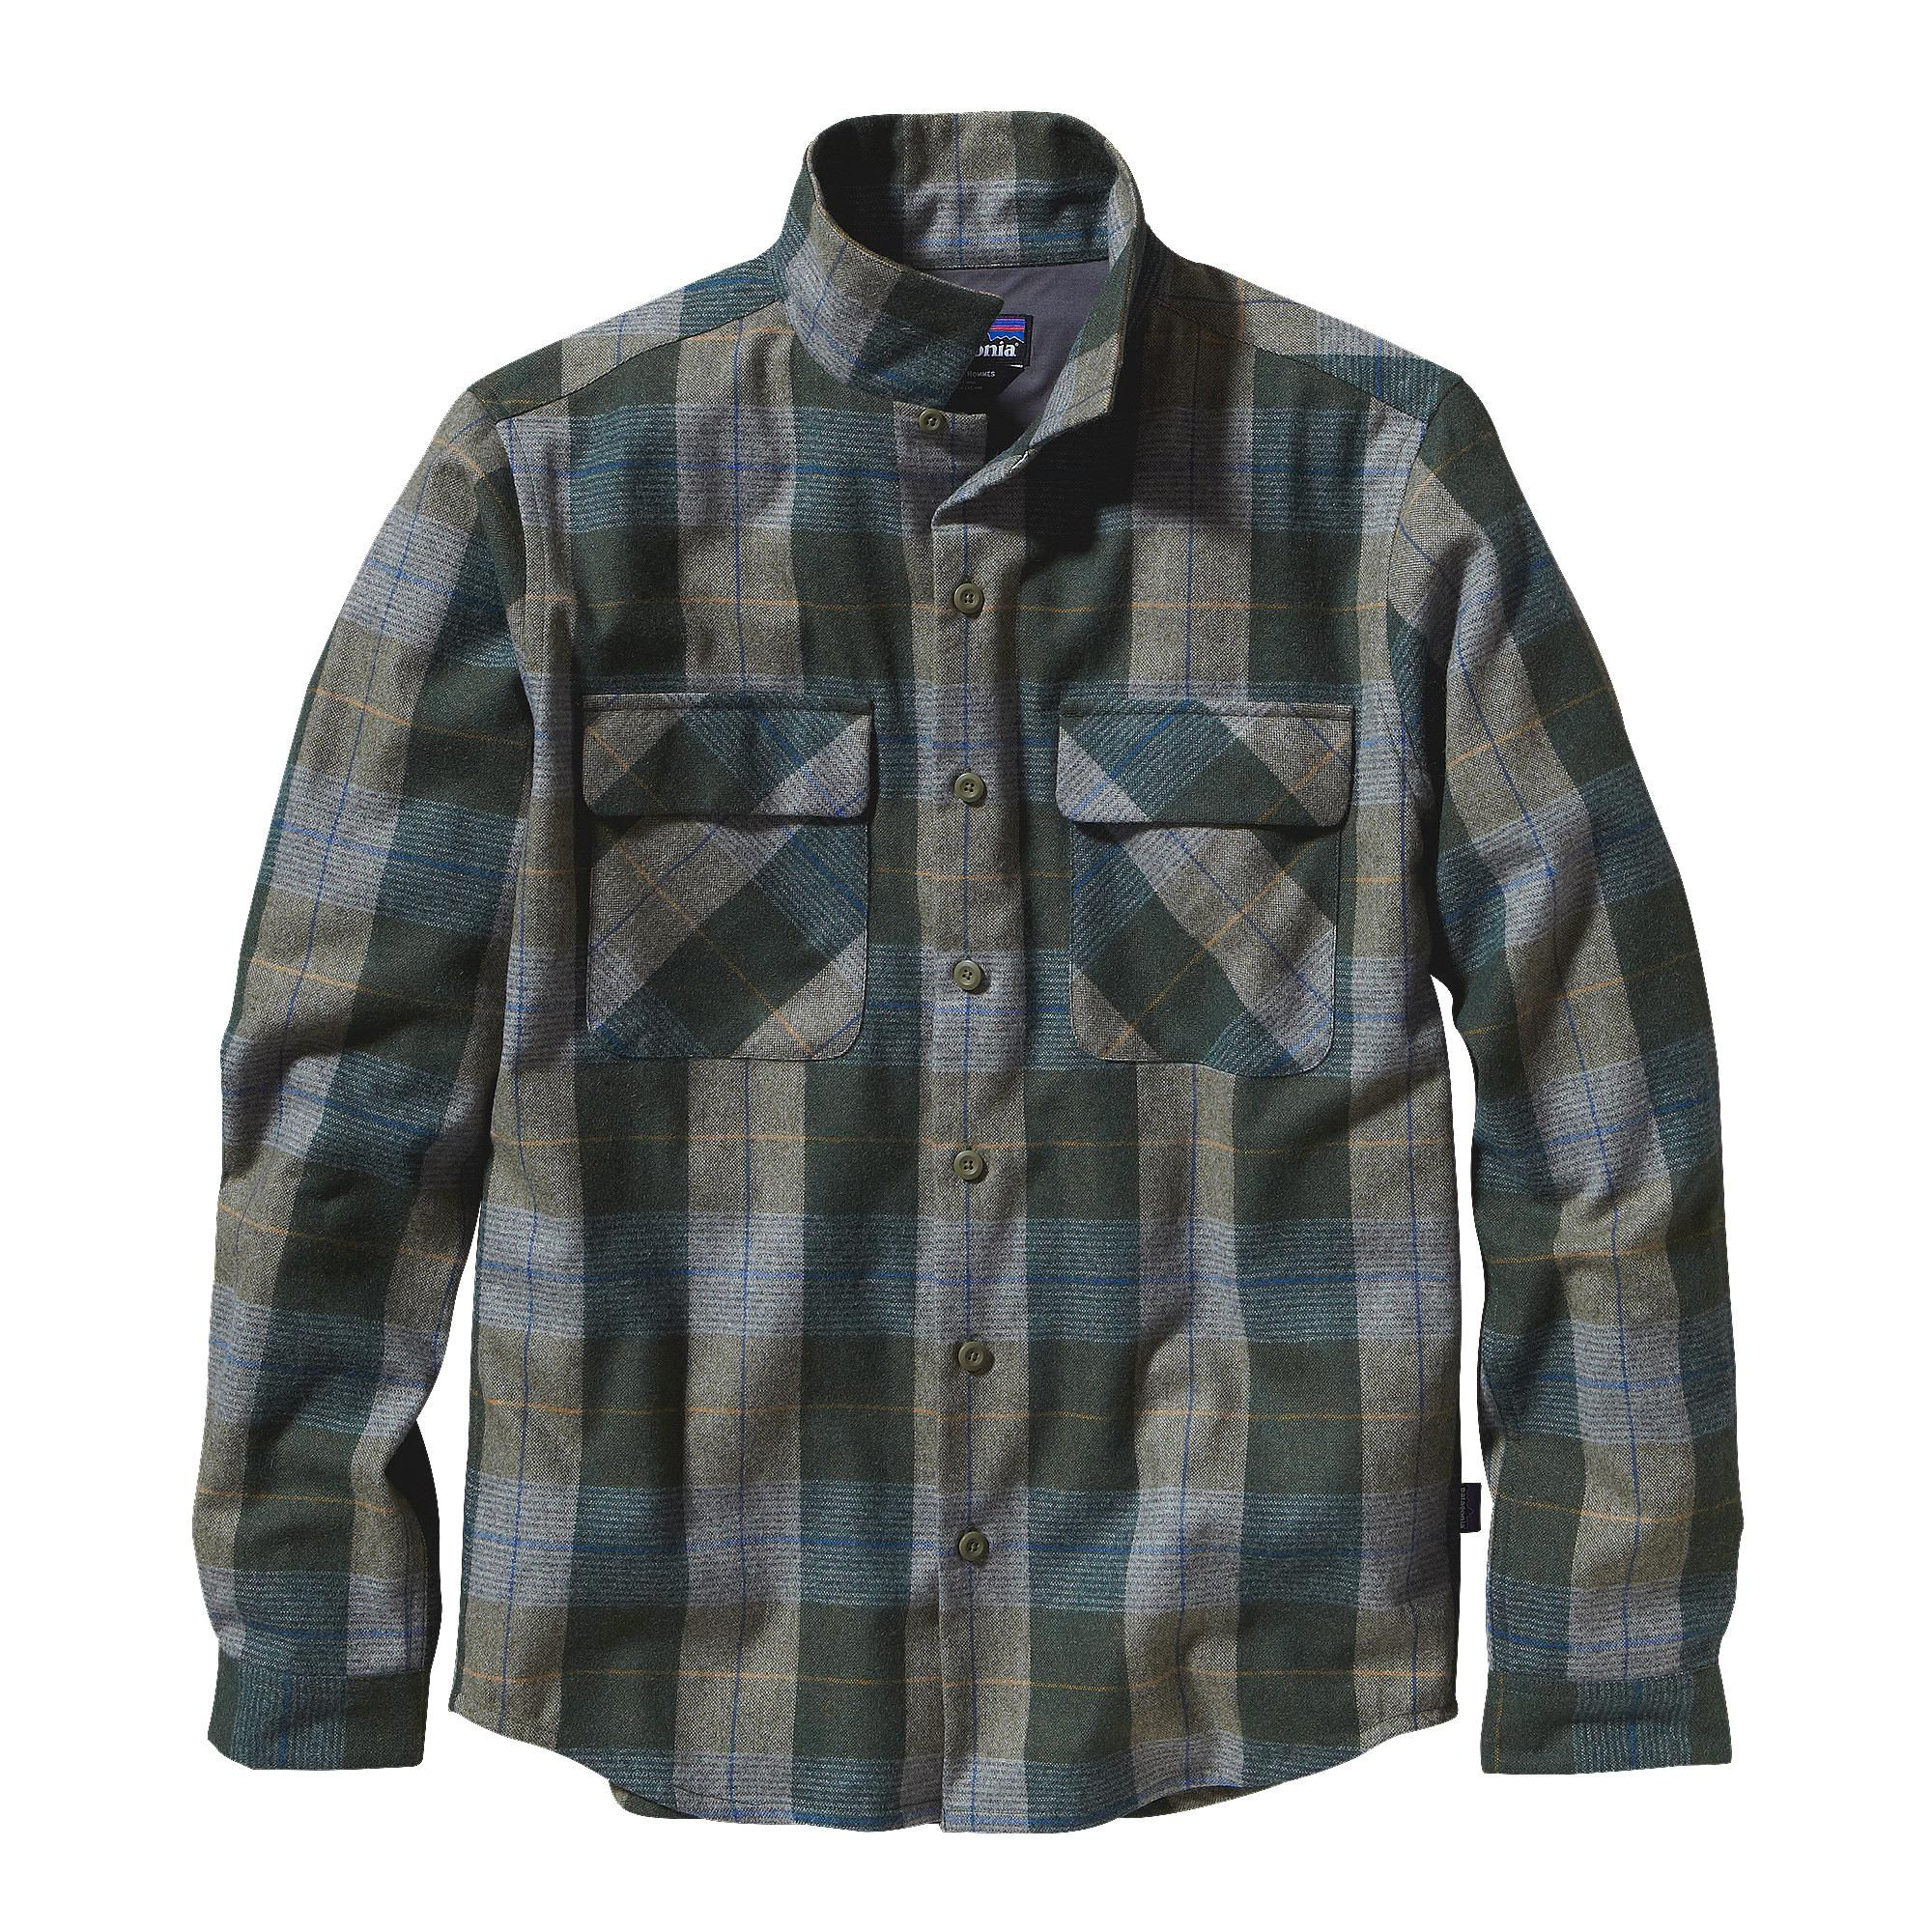 Wool cashmere flannel jacket  Patagonia  Menus LongSleeved Gerard Shirt  A traditional open